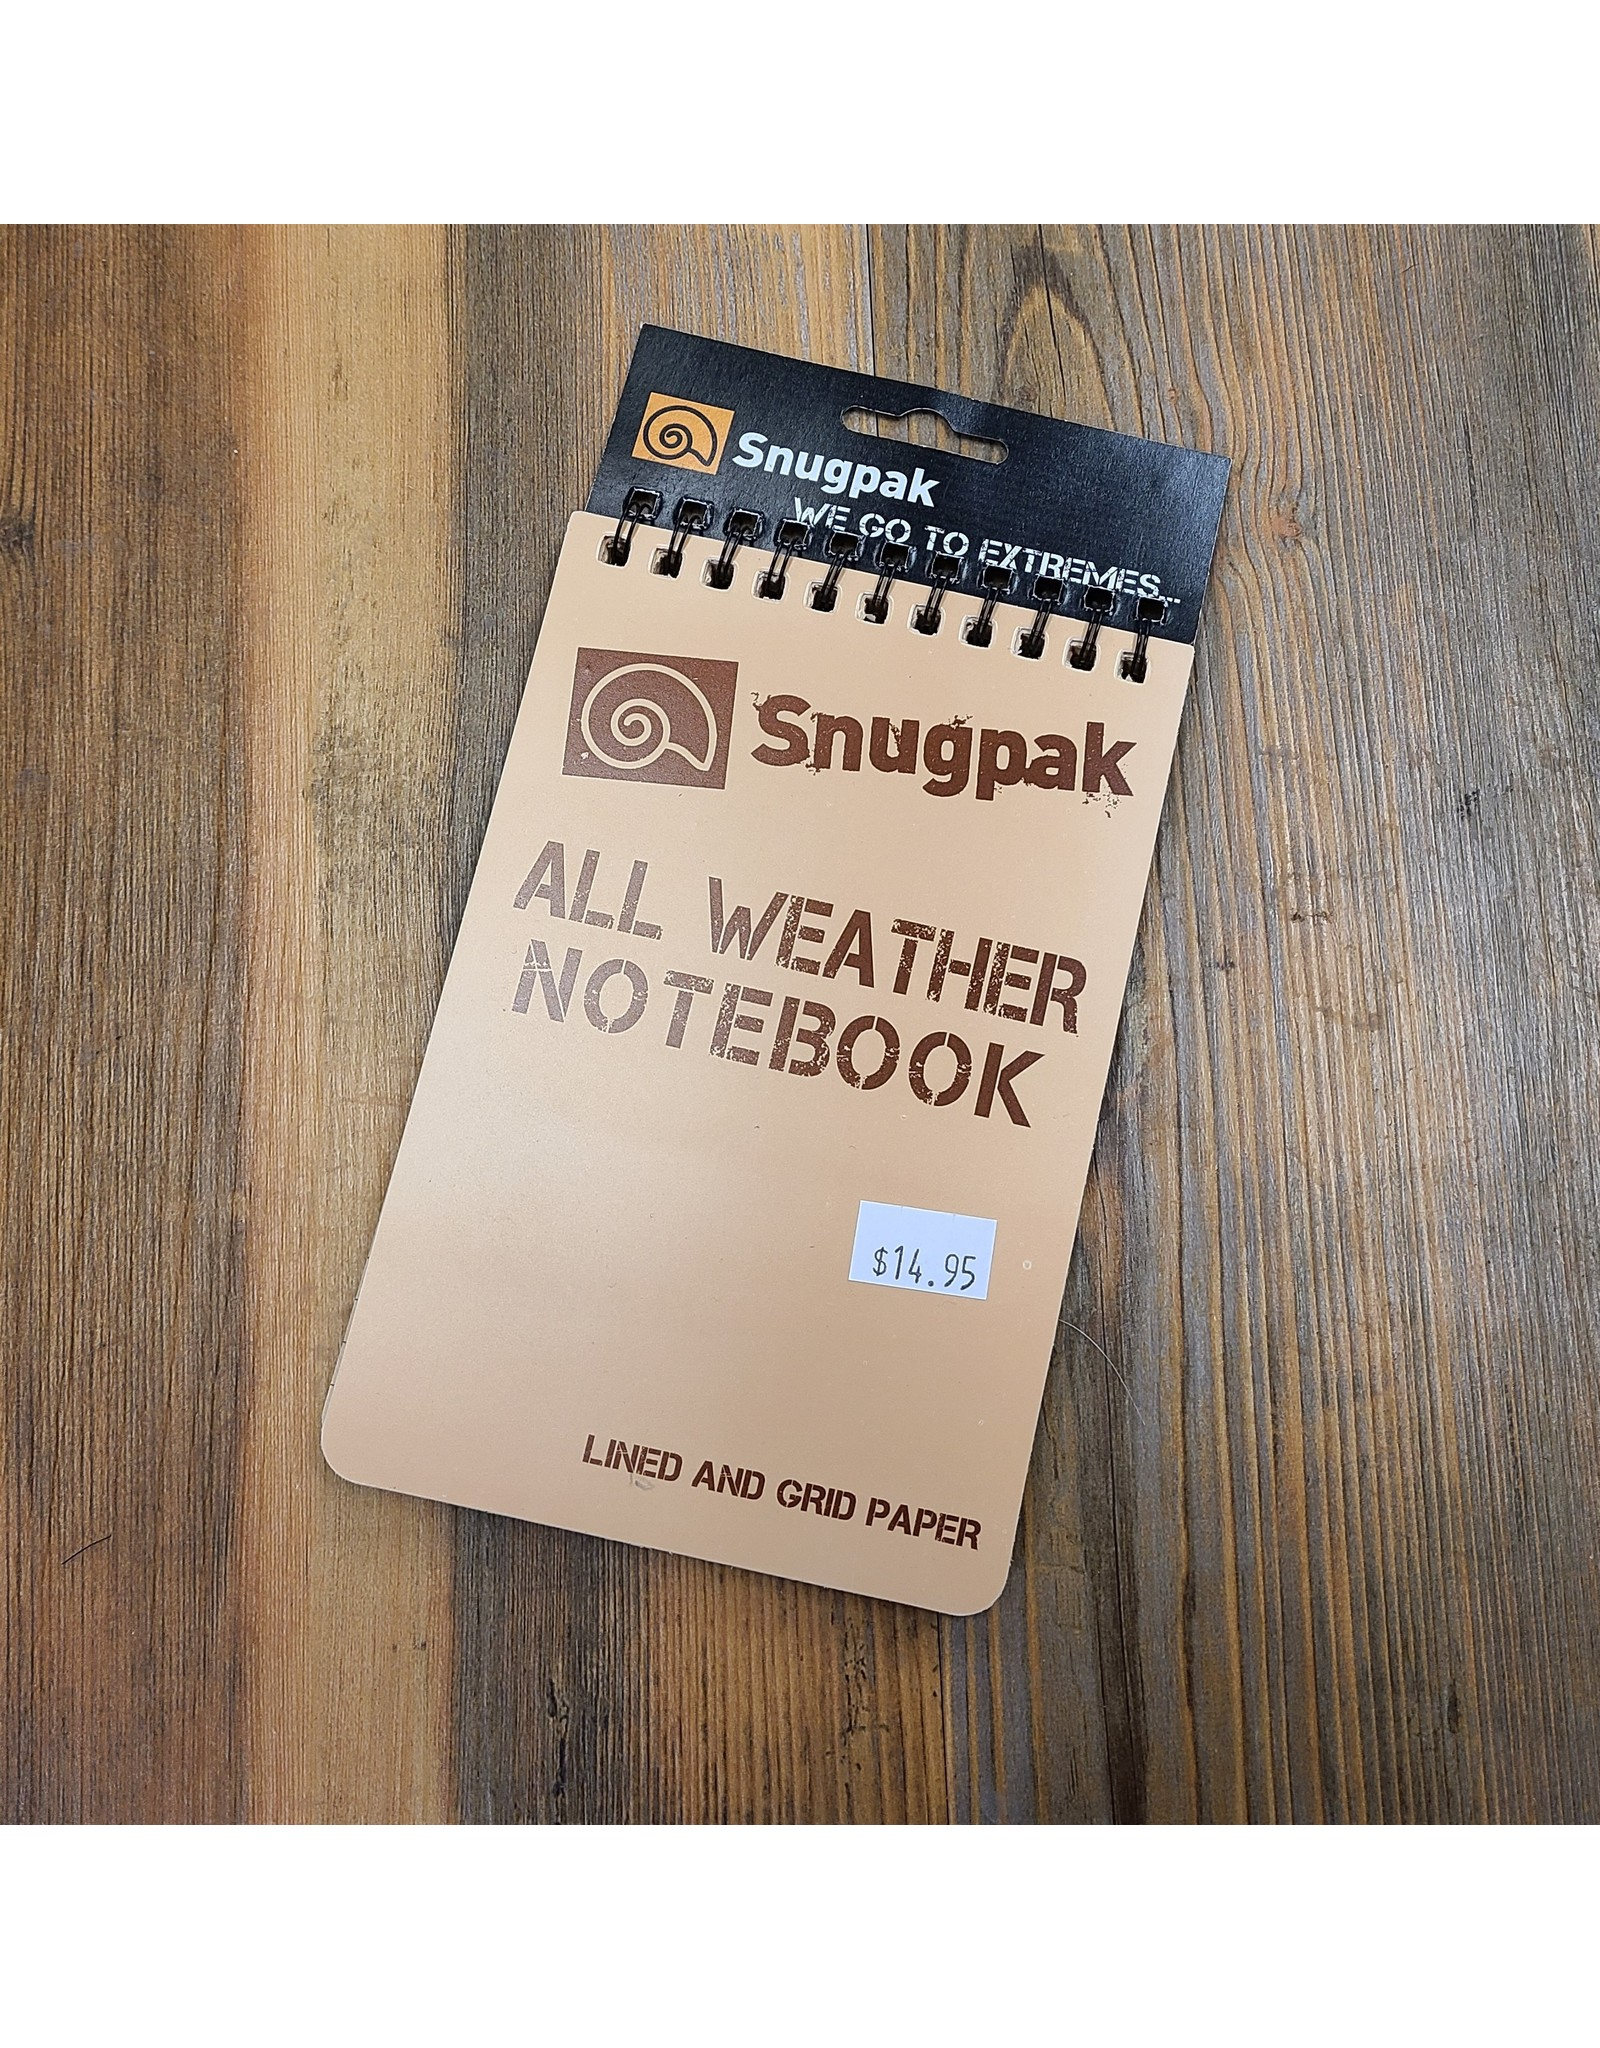 SNUGPAK ALL WEATHER NOTEBOOK